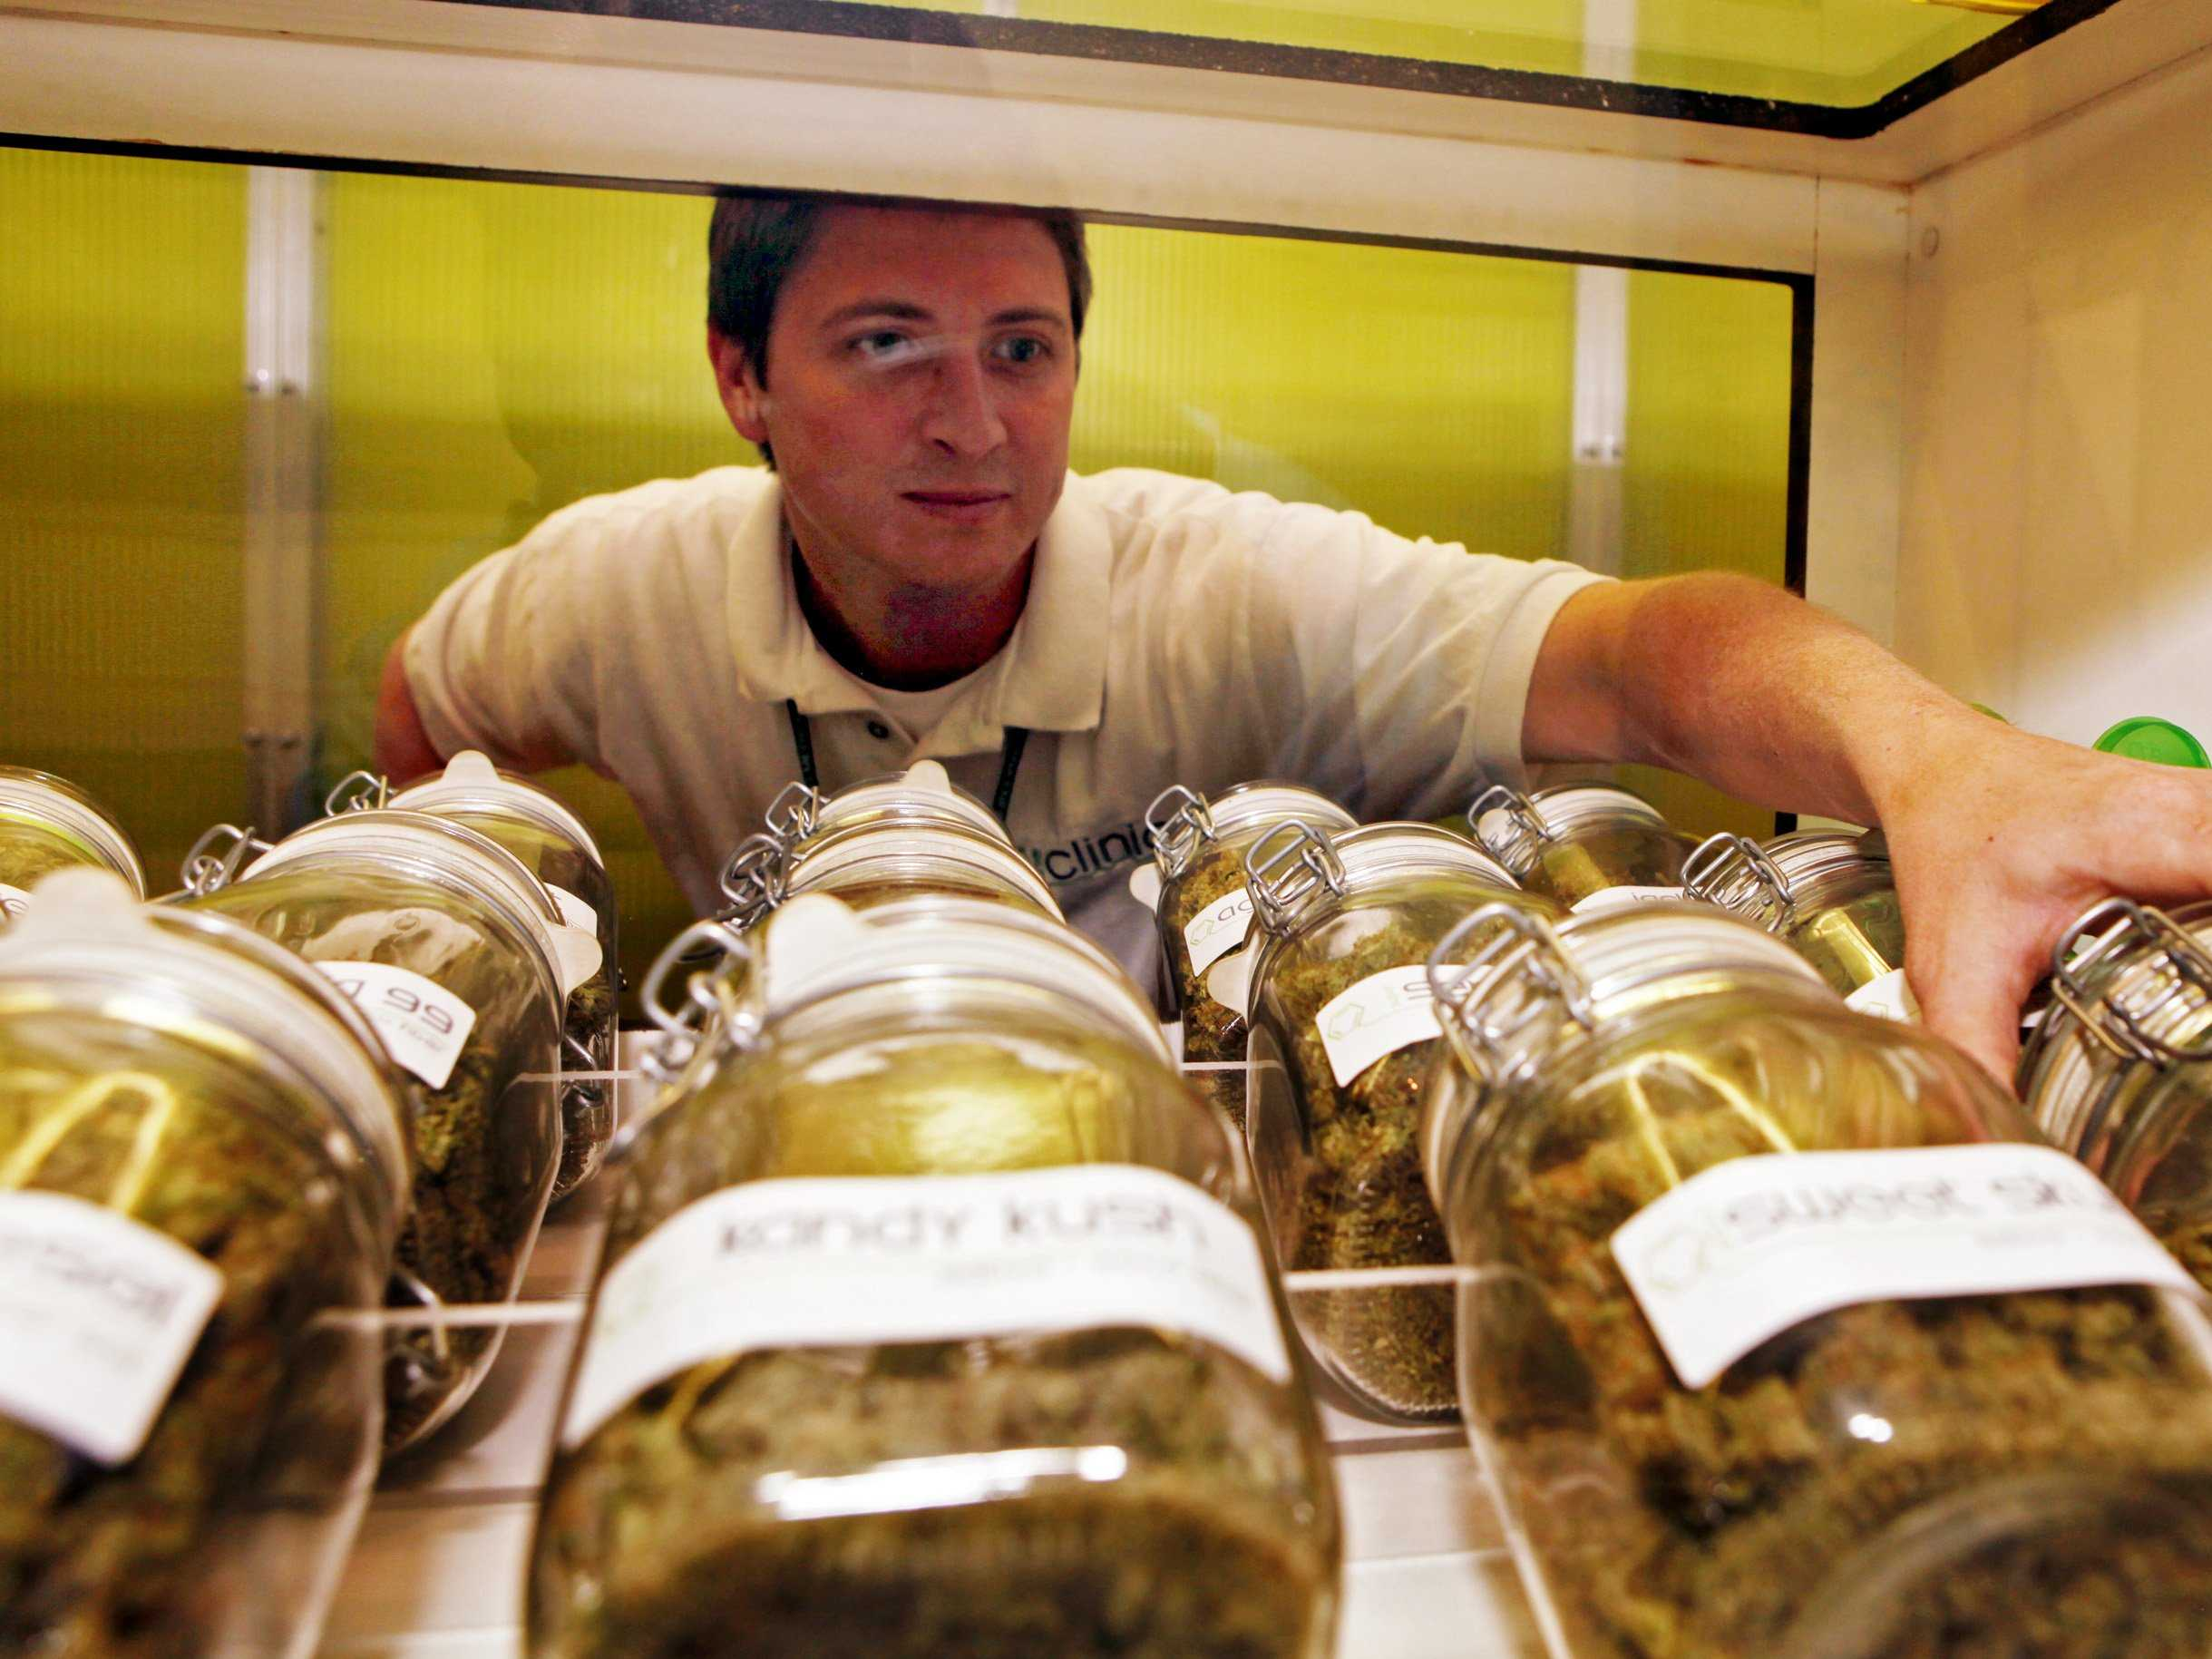 ever since colorado legalized weed theres been a big spike in people traveling to denver